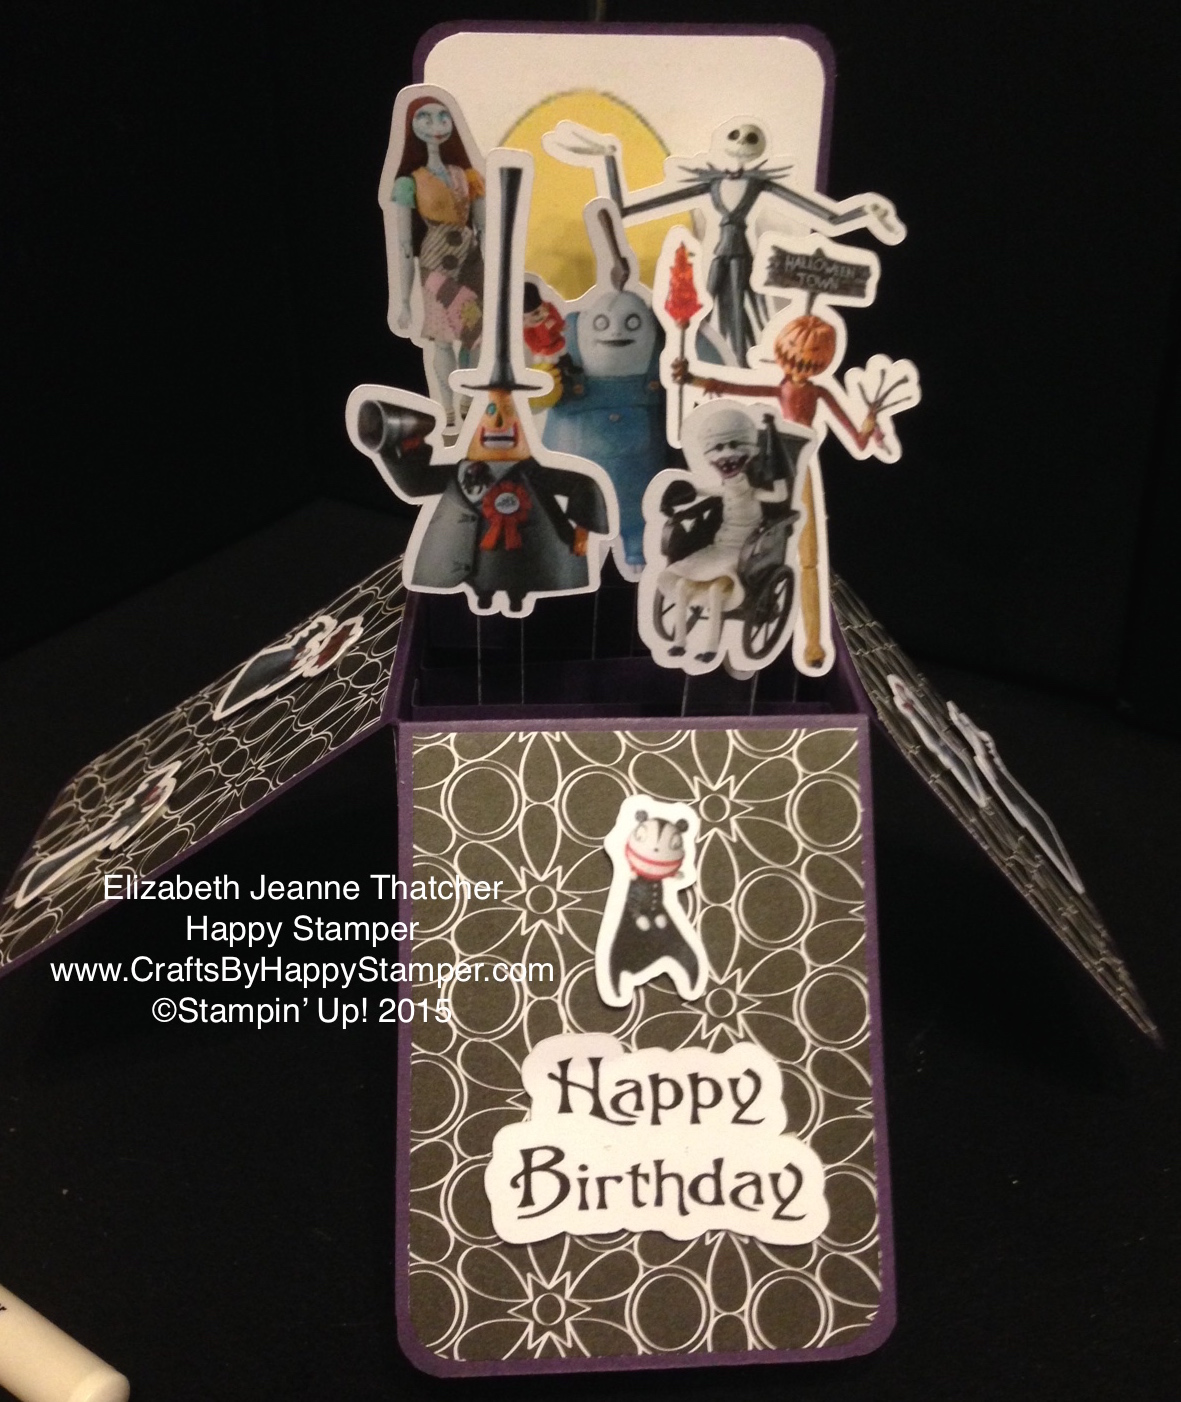 Nightmare Before Christmas Birthday Card in a Box   Crafts By Happy ...